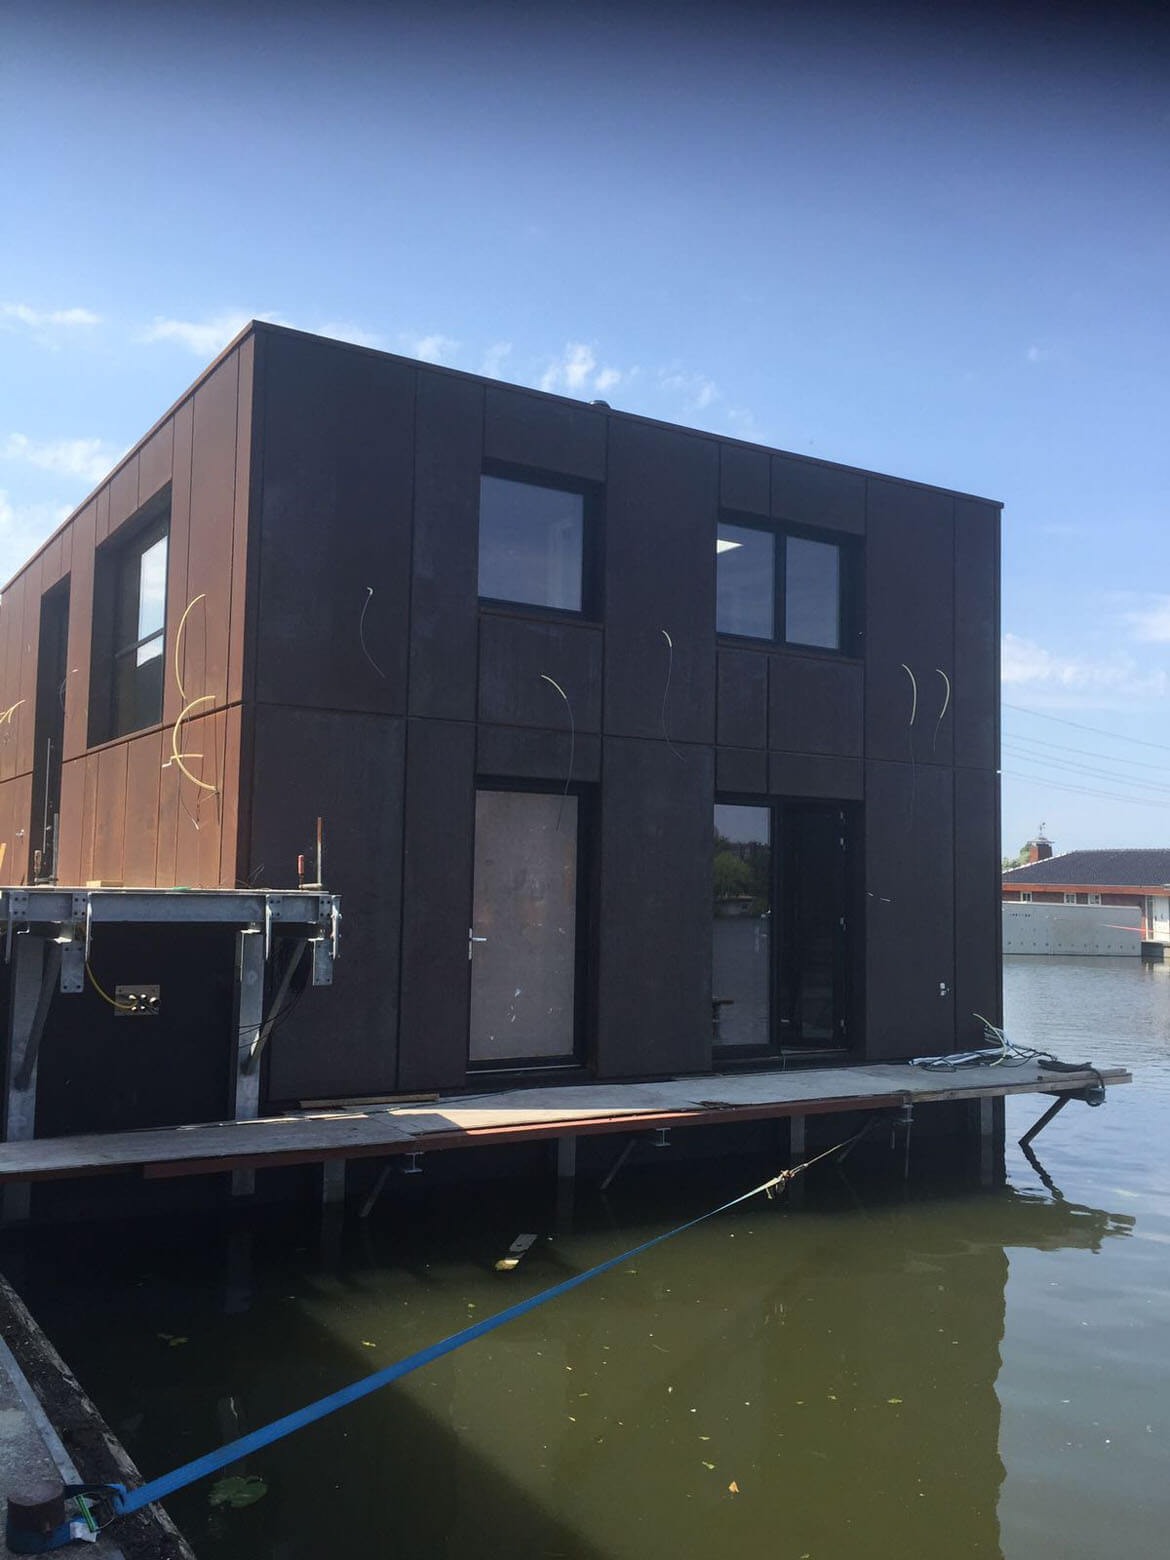 Construction In Progress Watervilla Dordrecht